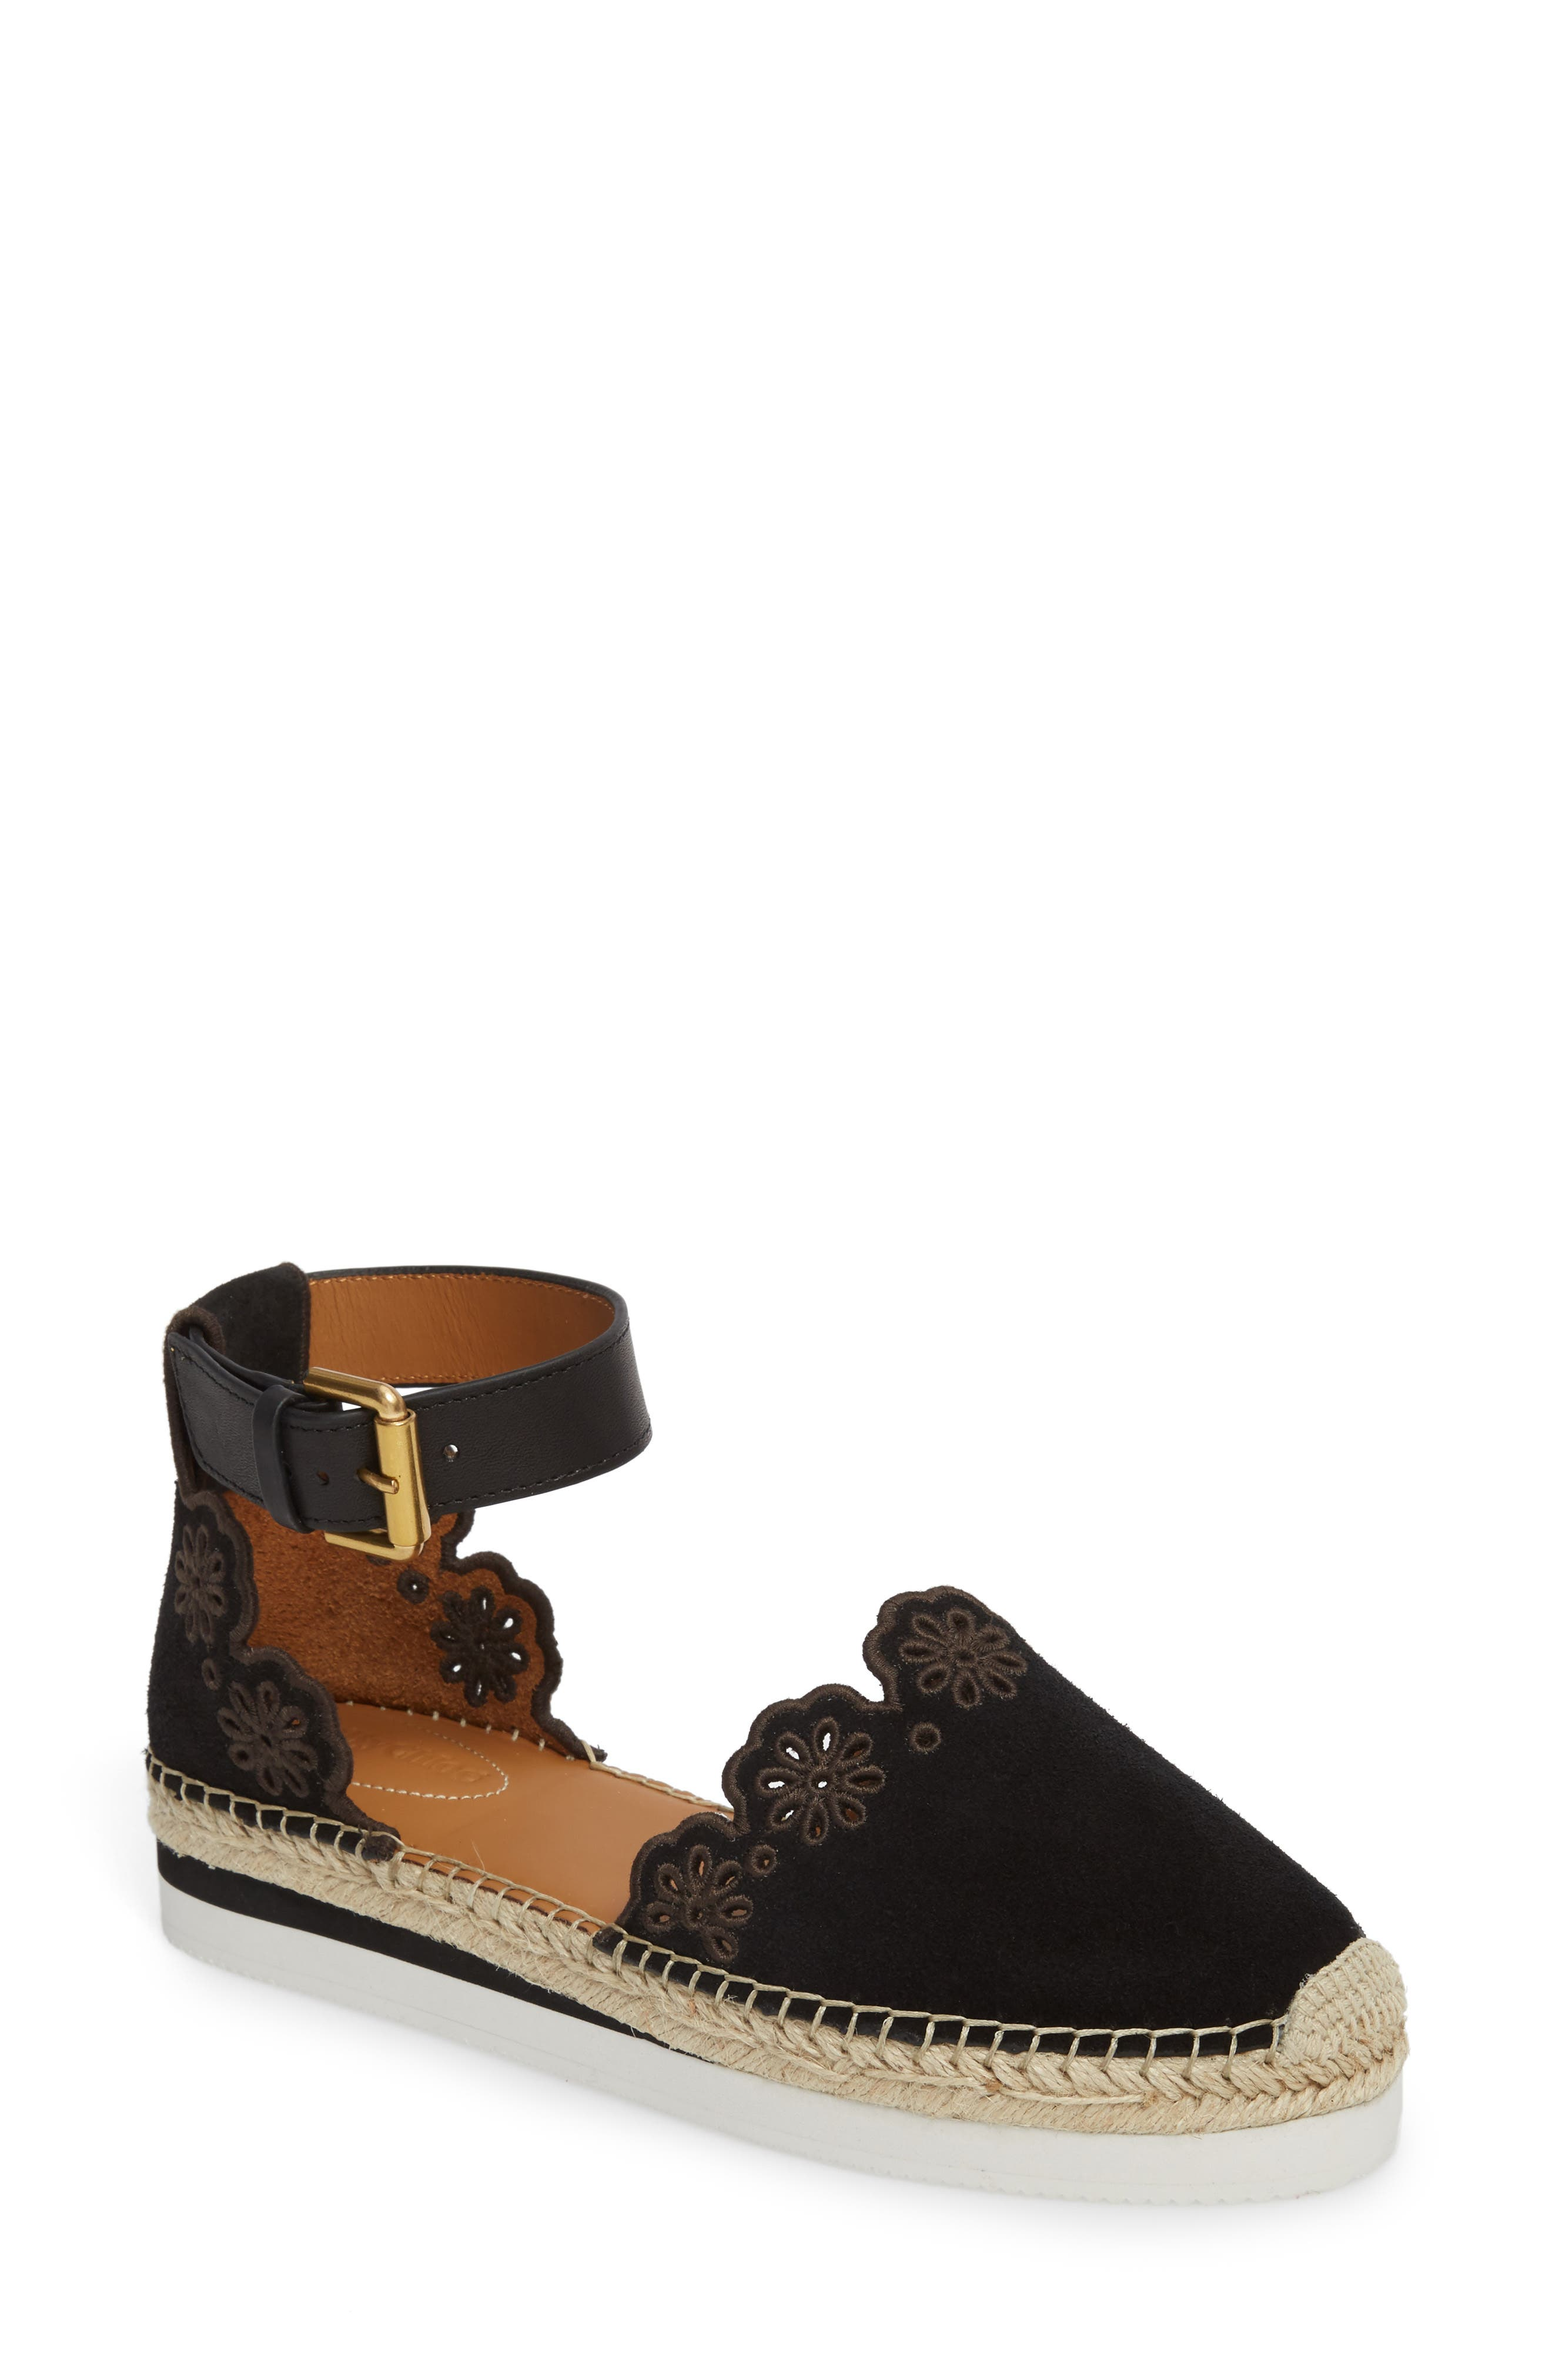 Main Image - See by Chloé Glyn Espadrille Sandal (Women)